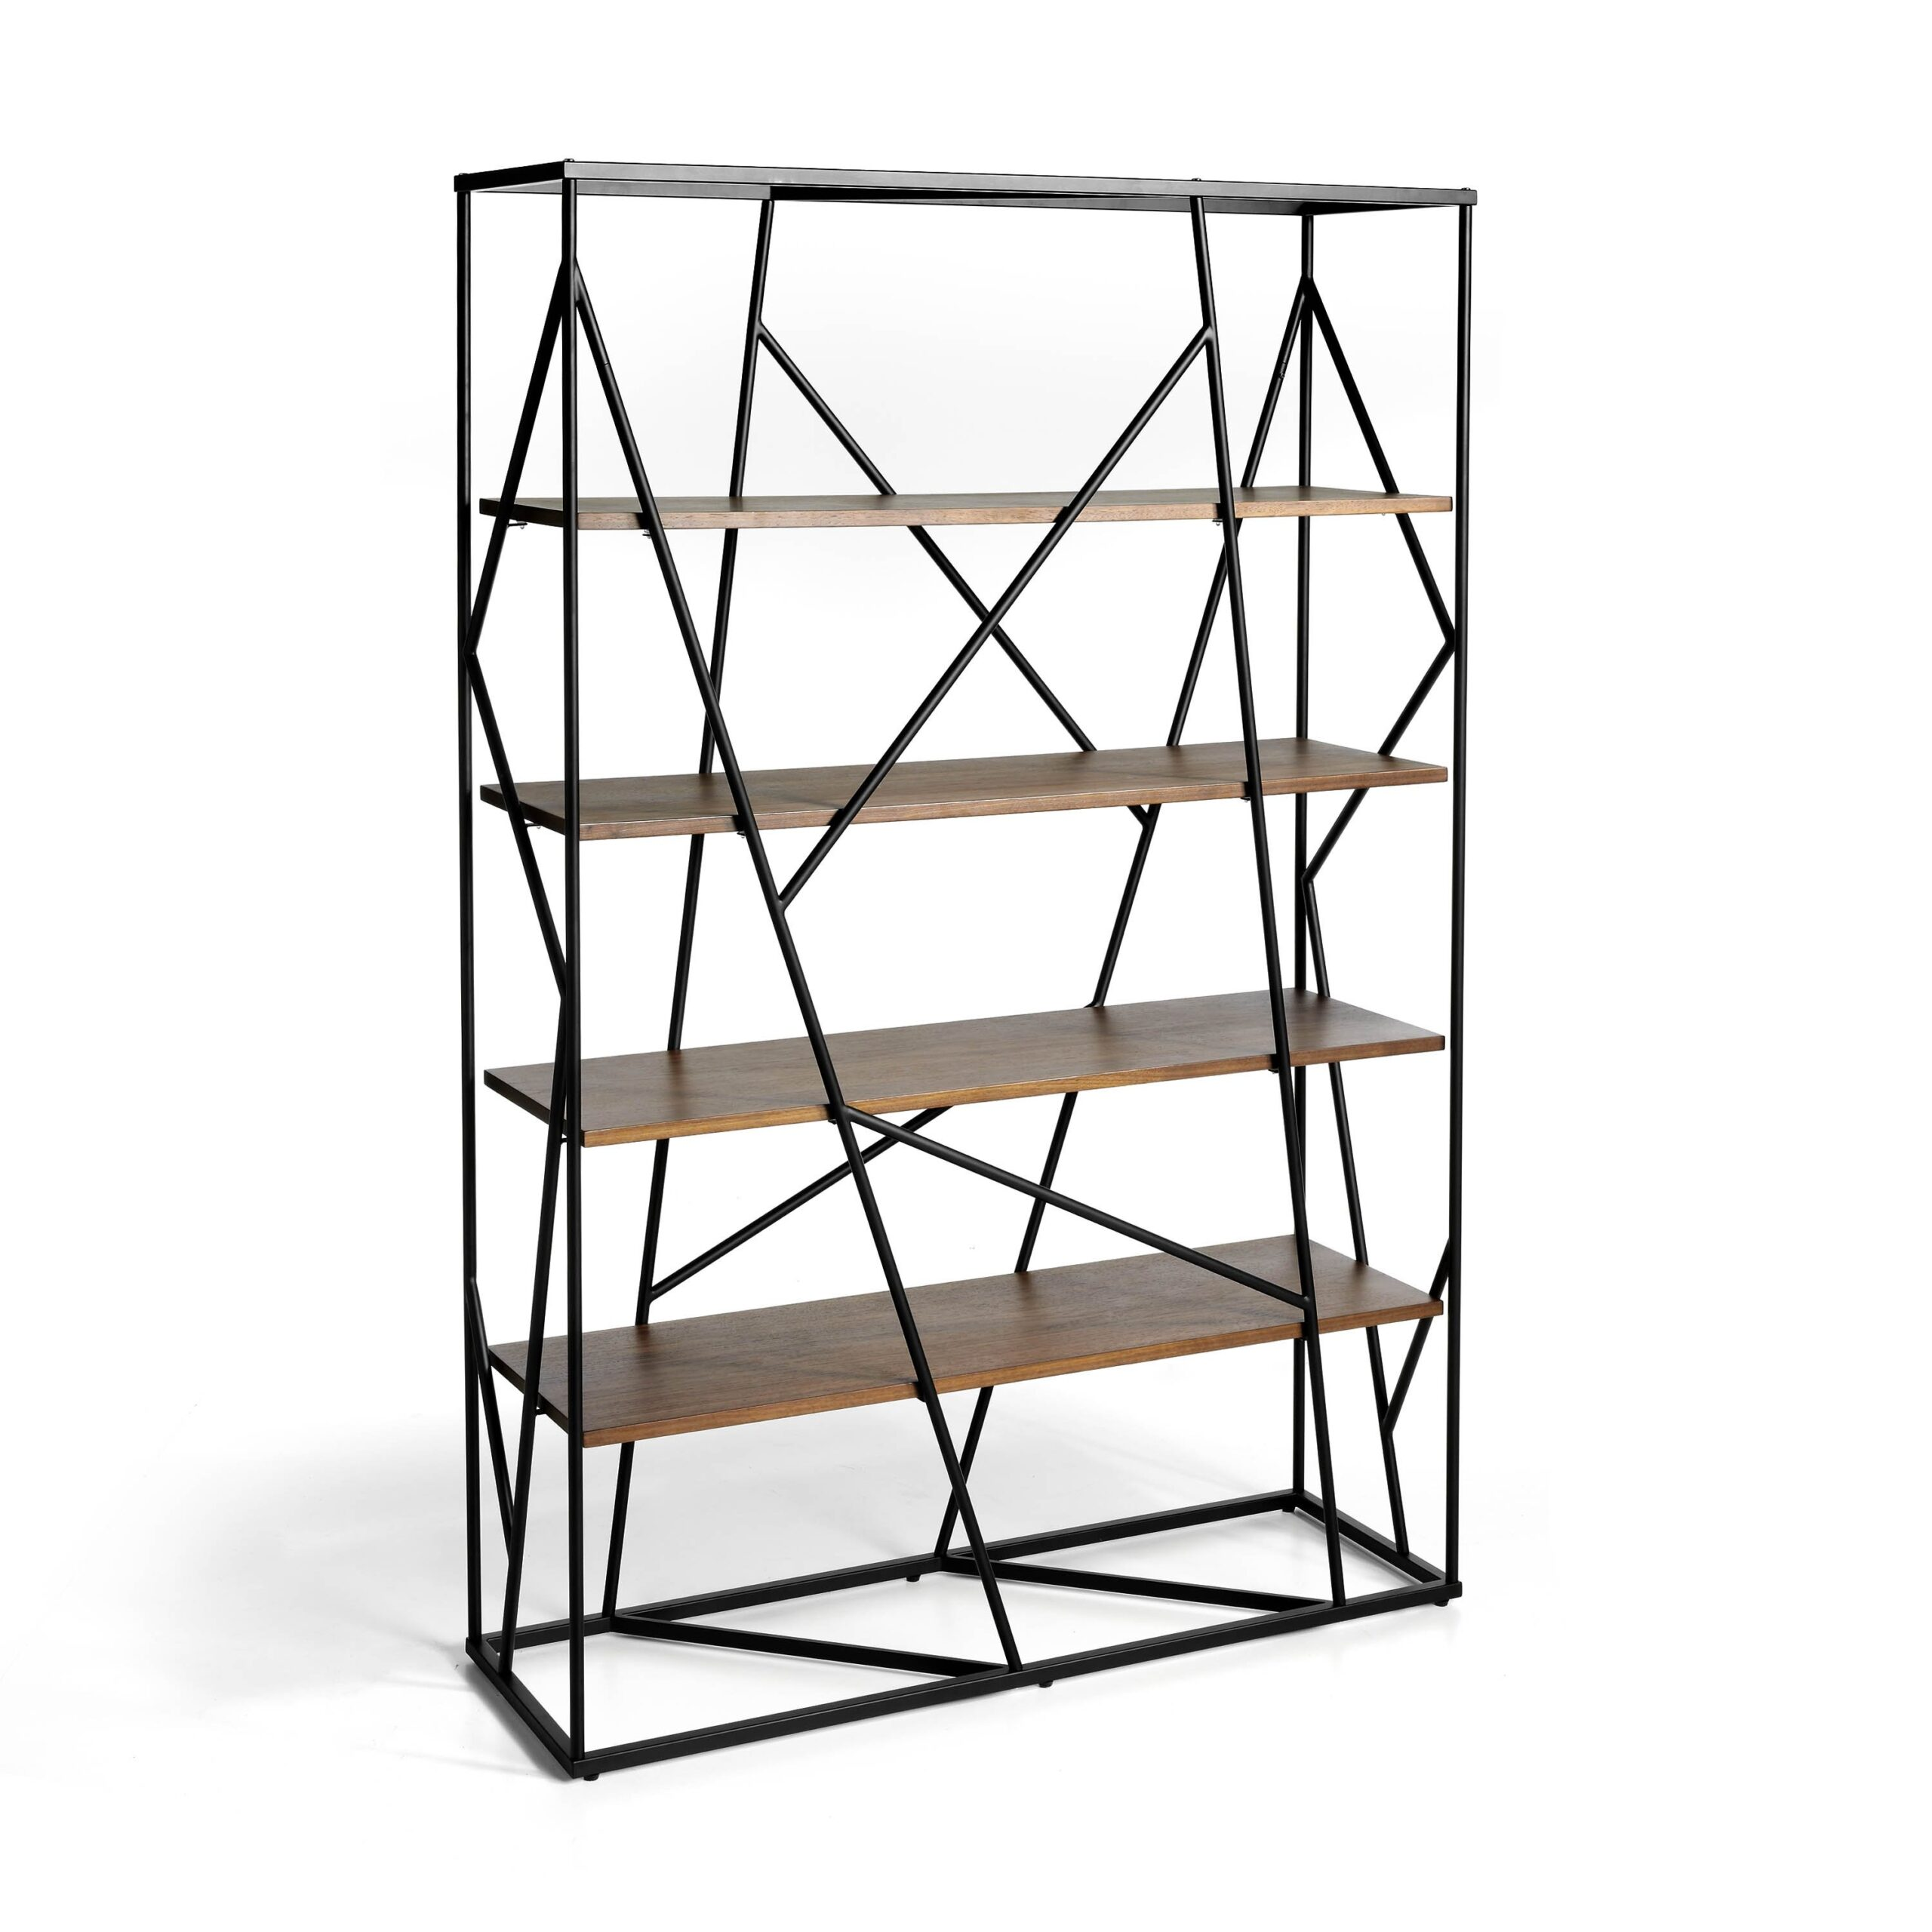 https://woodgreen.ae/wp-content/uploads/2021/10/angel-cerda-nature-life-collection-3103-bookcase-04-scaled-2.jpg